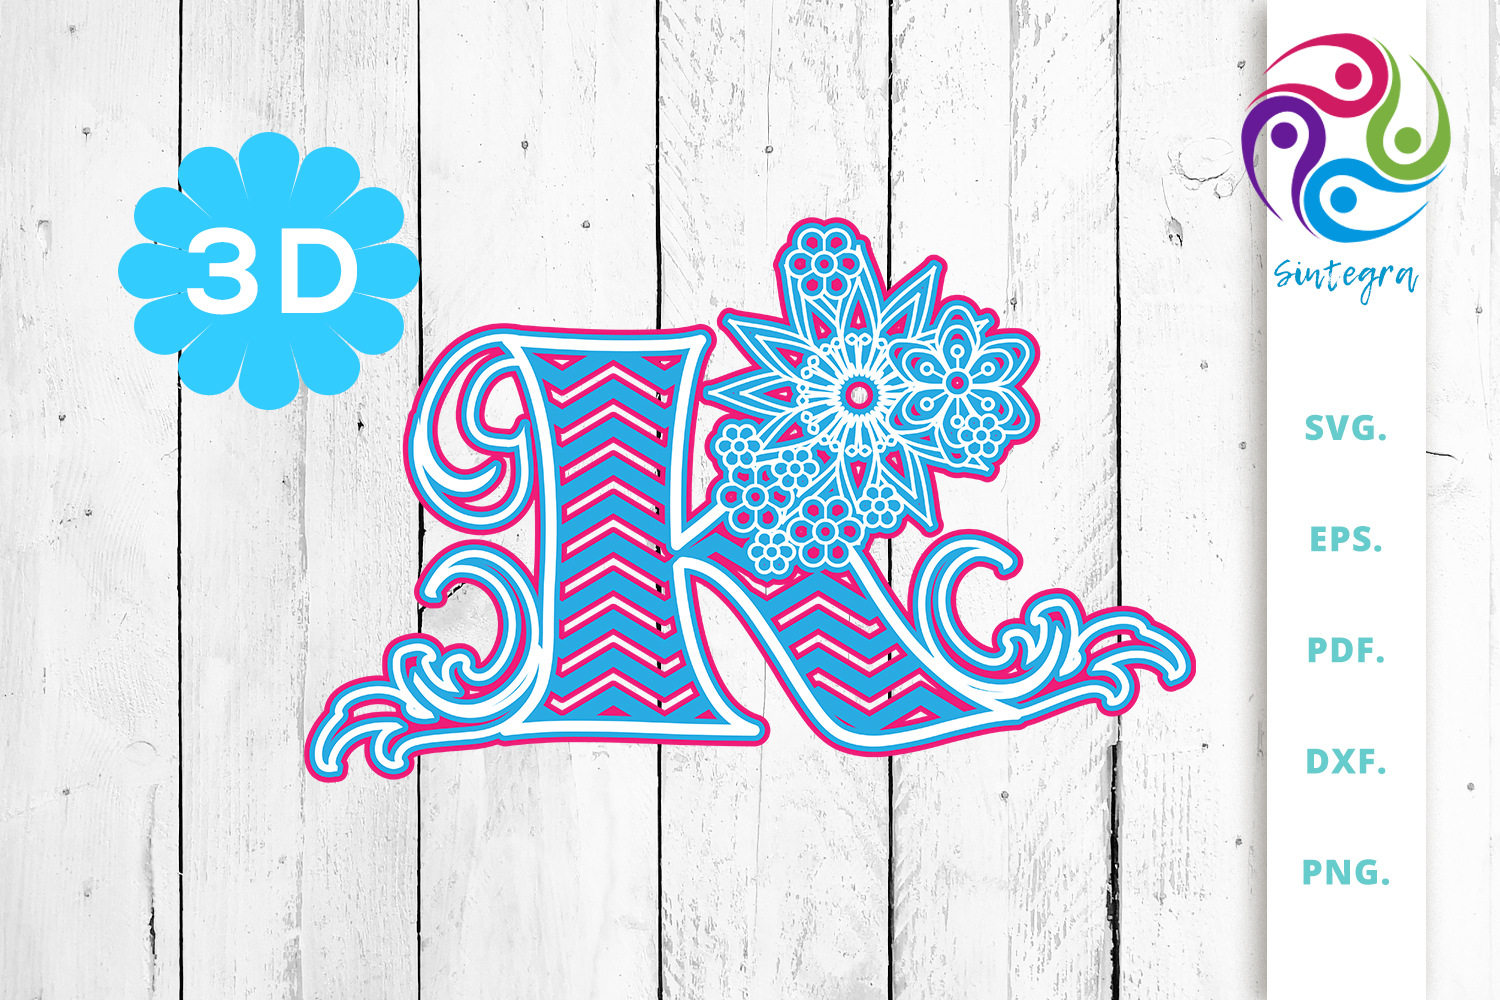 Download Free 3d Multilayer Floral Chevron Letter K Graphic By Sintegra for Cricut Explore, Silhouette and other cutting machines.